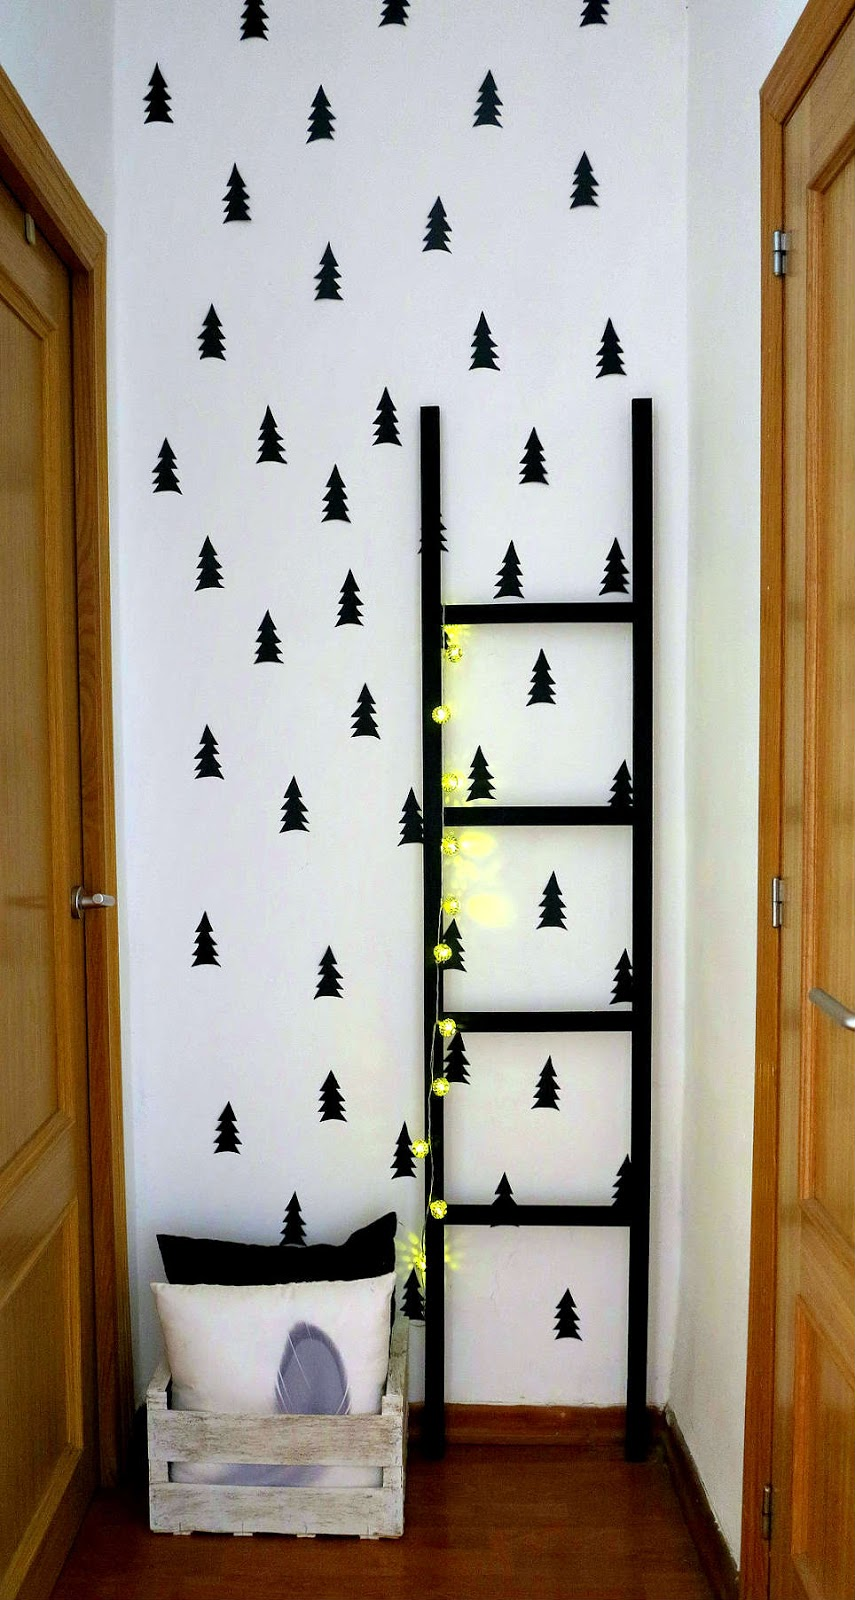 Small lowcost diy escalera y decorando la pared del pasillo - Decoracion paredes pasillos ...